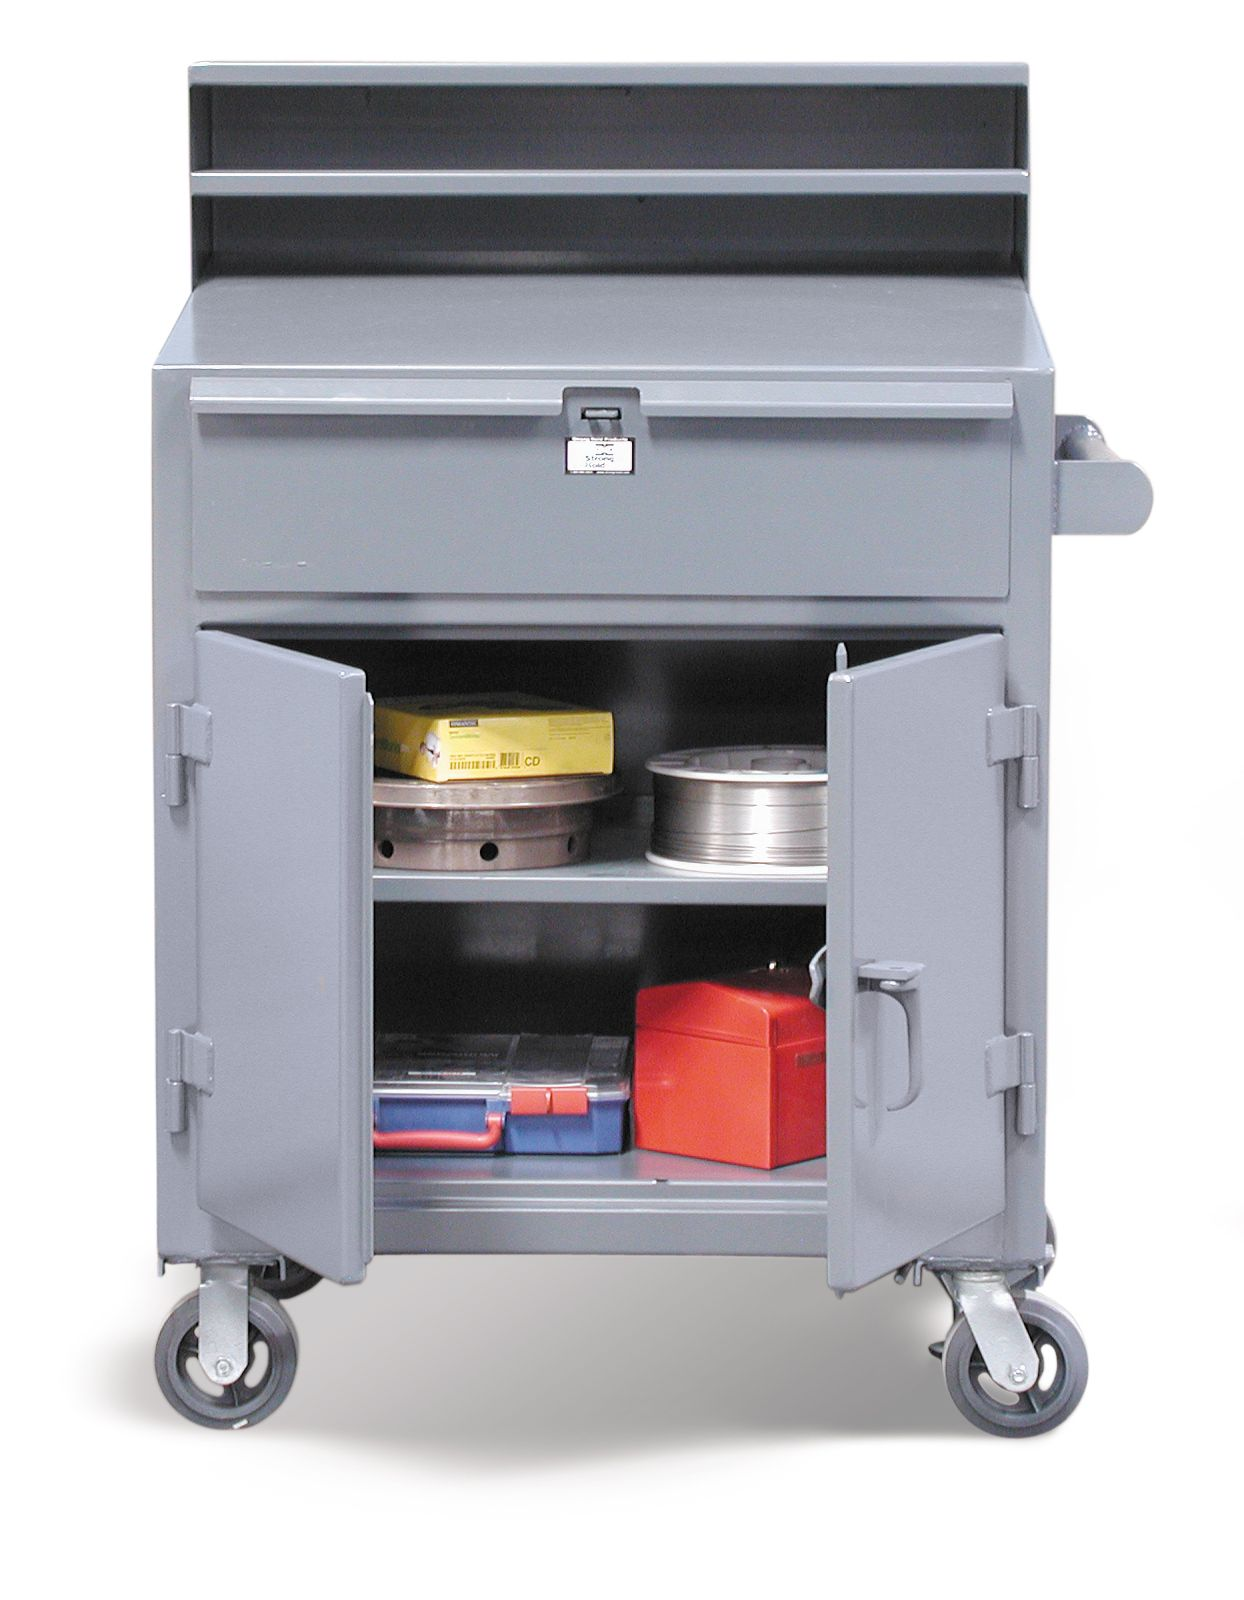 Mobile Shop Desk - These standard mobile shop desks are made for heavy duty 12 gauge steel and are designed to last. The casters are 2 inches x 6 inches and make moving this desk around your shop easy. Our shop desks are commonly found in assembly areas, maintenance departments, warehouses and on shipping and receiving docks. Our desks feature a 3-point locking system and a wrap around design.